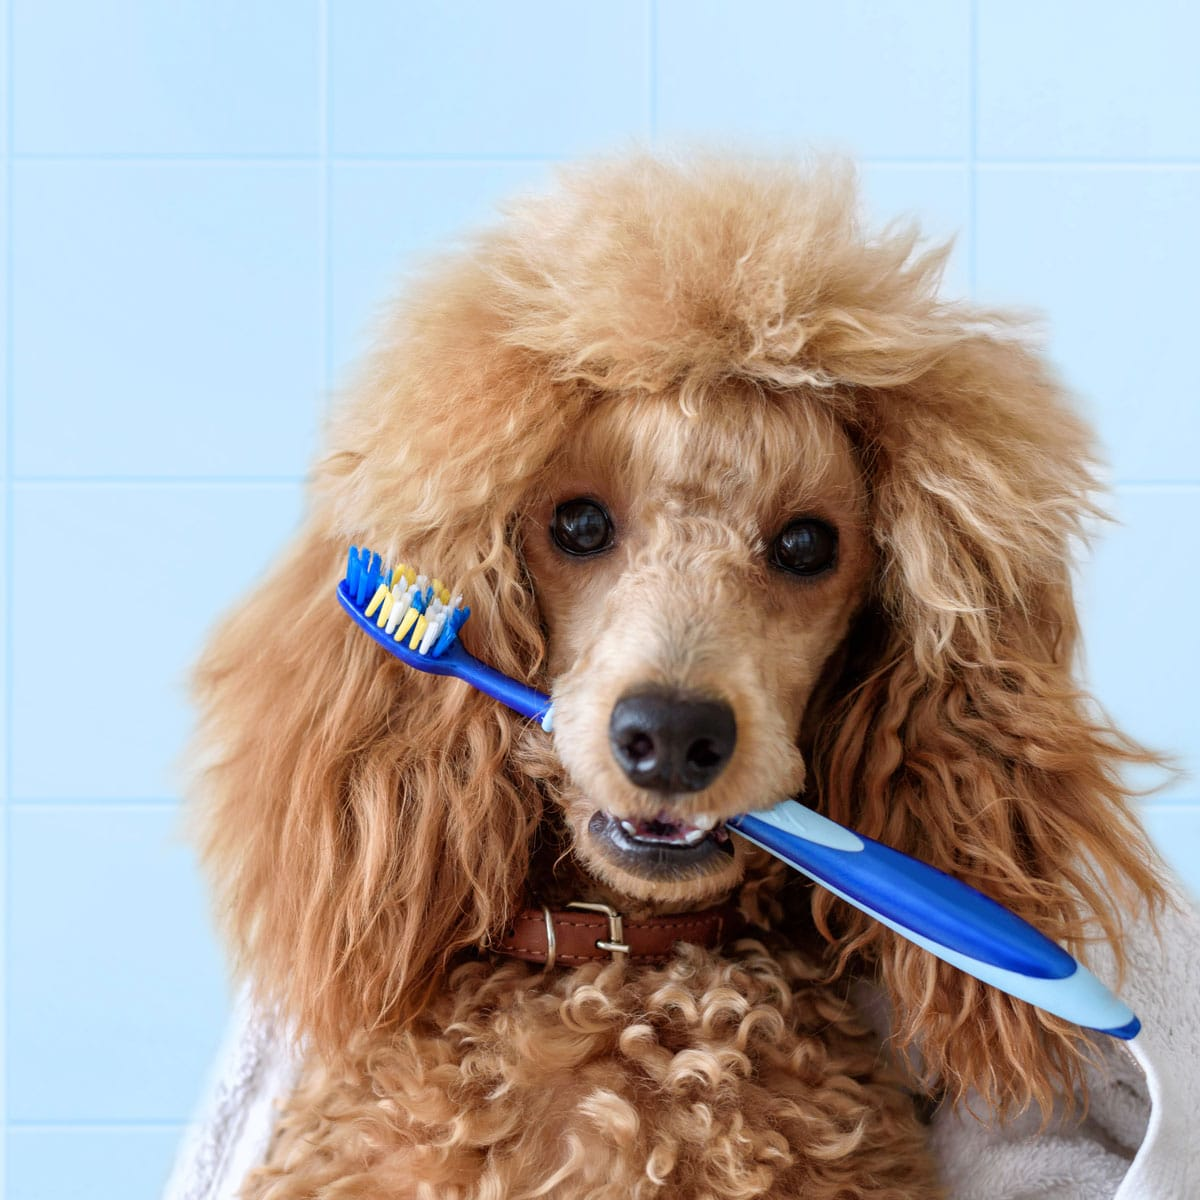 PET DENTAL HEALTH MONTH - February 2020   National Today